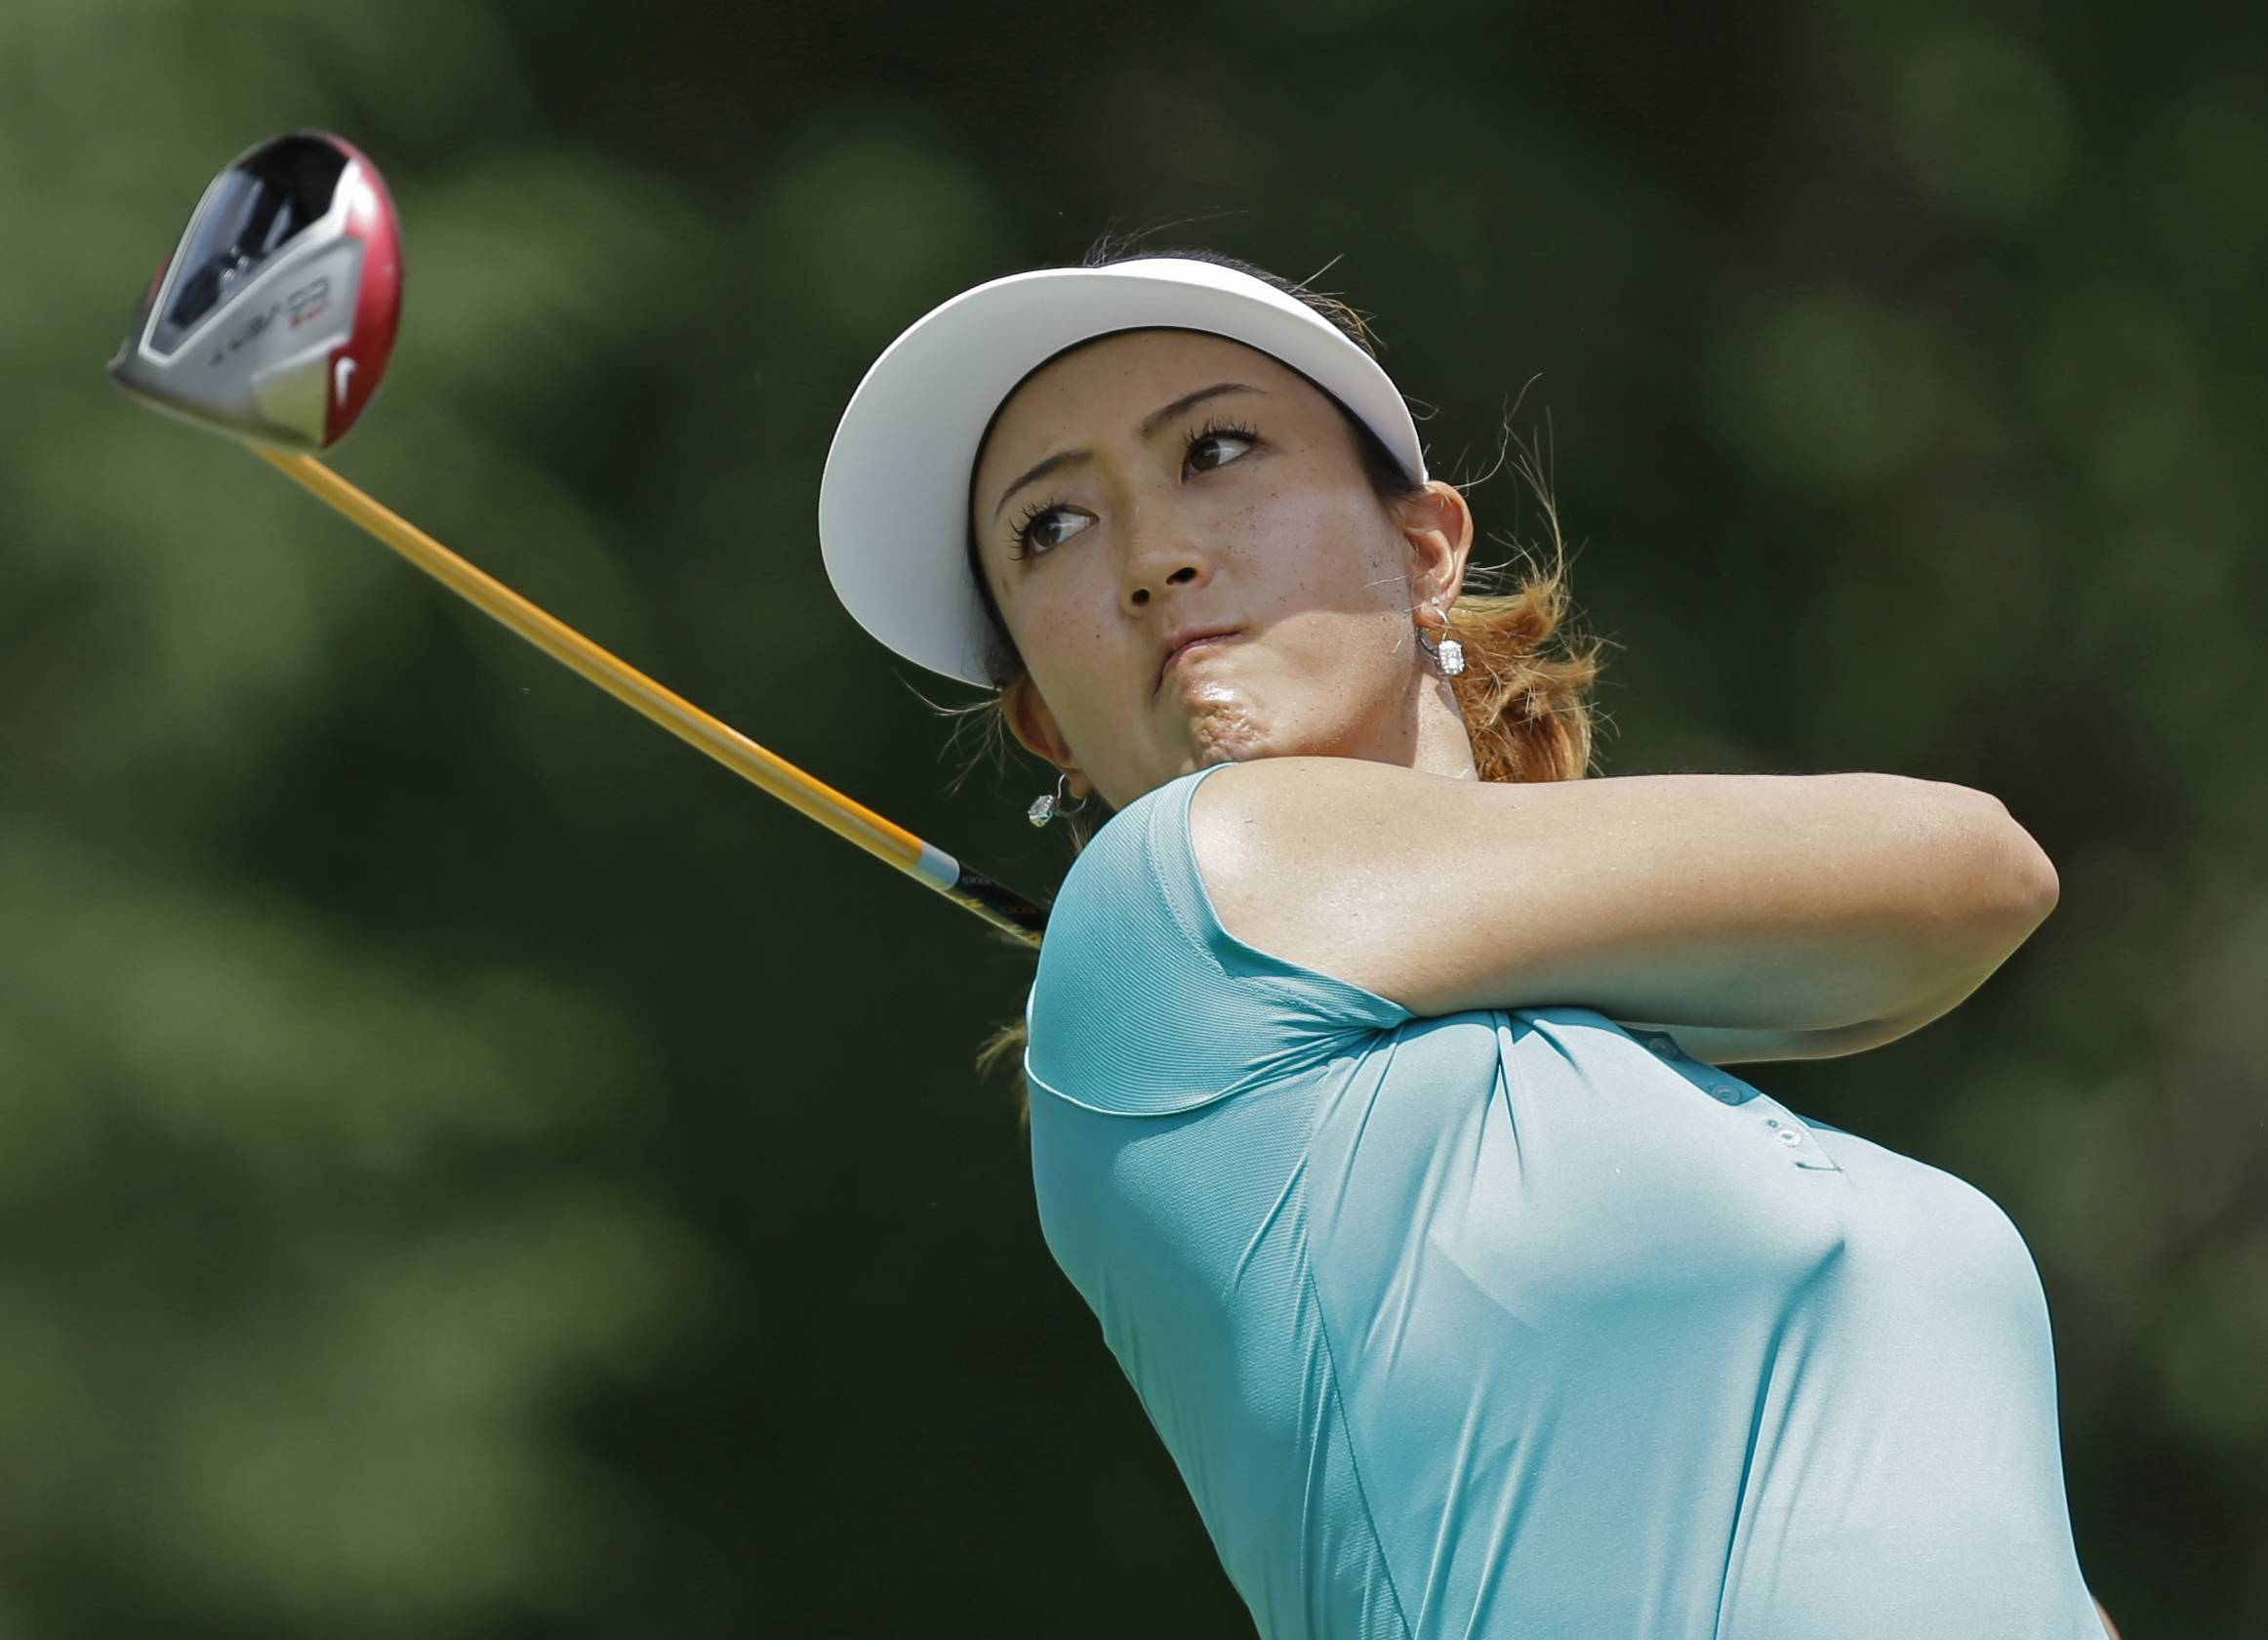 Michelle Wie watches her tee shot on the seventh hole during the final round of the U.S. Women's Open golf tournament in Pinehurst, N.C., Sunday, June 22, 2014.